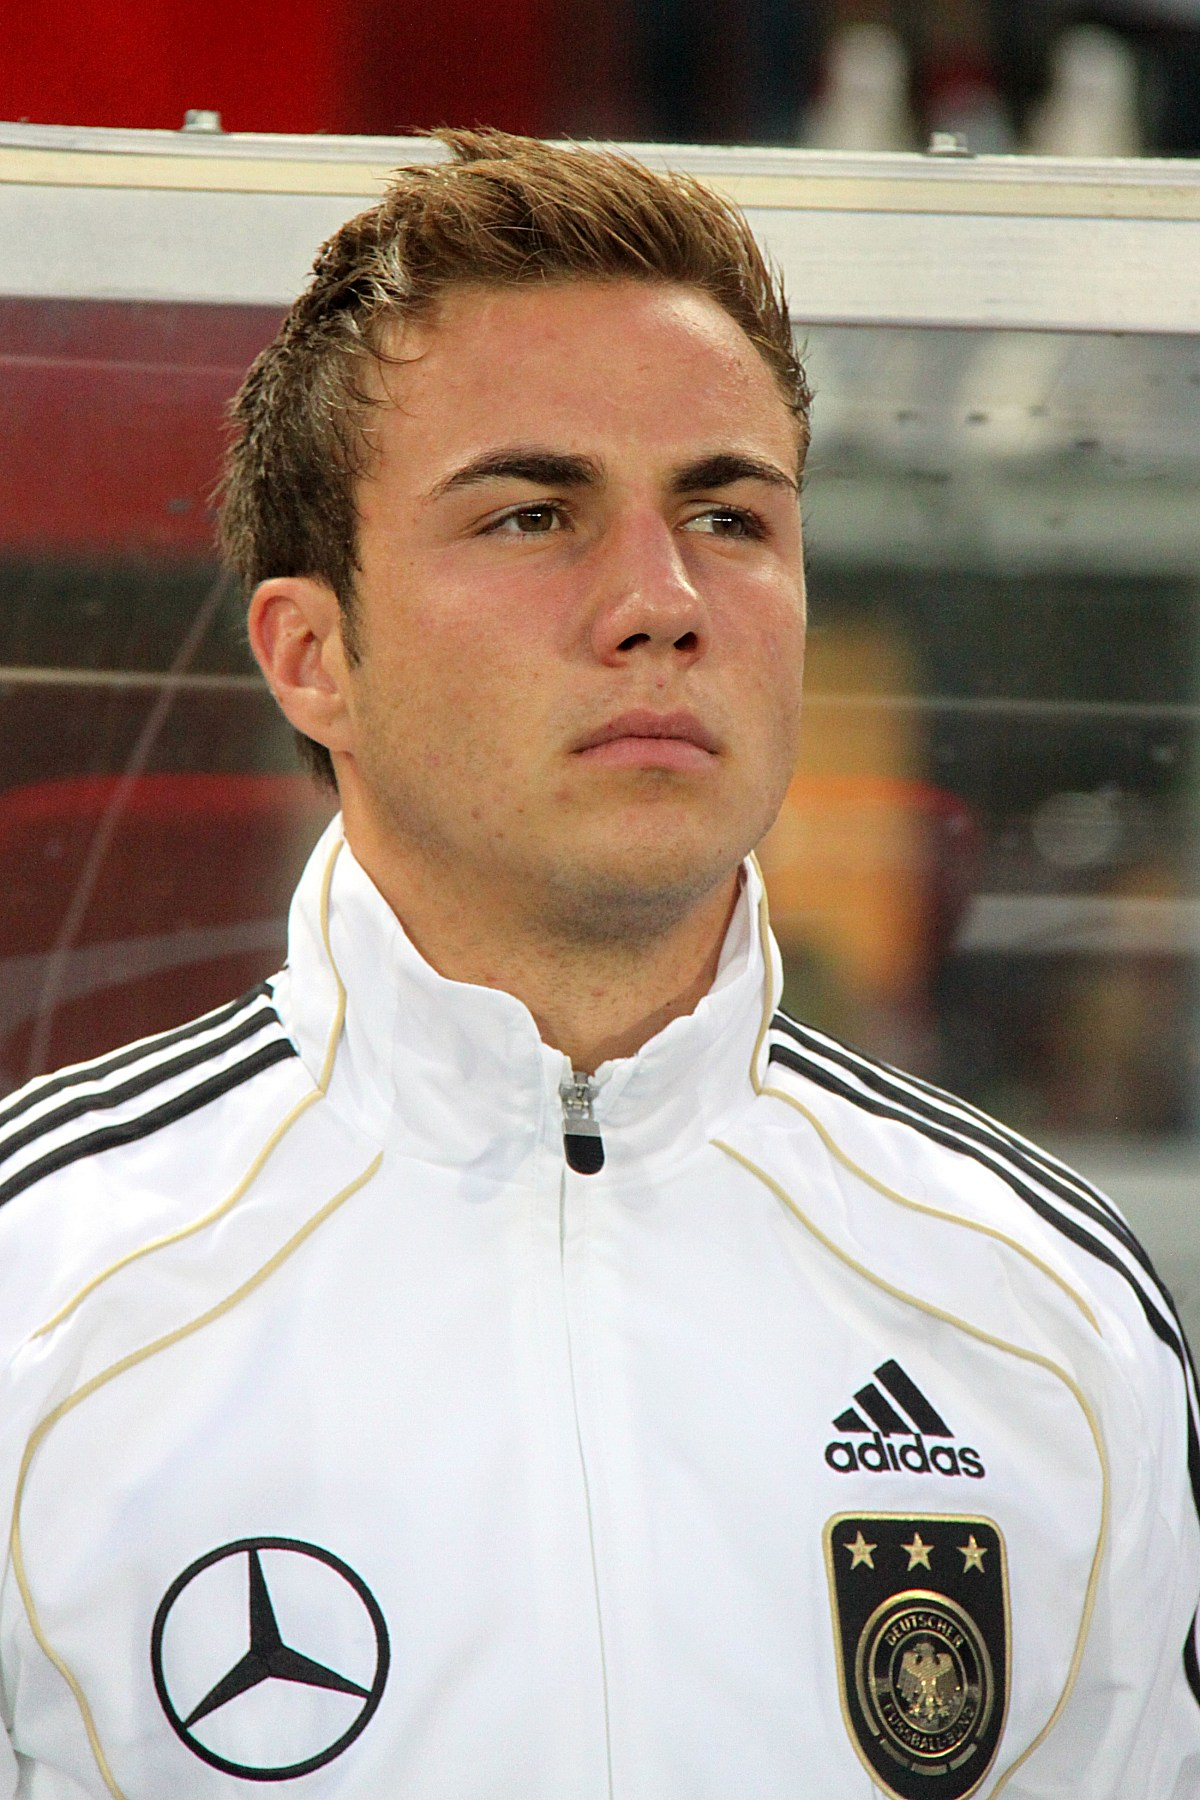 Mario_G%C3%B6tze%2C_Germany_national_football_team_%2807%29.jpg